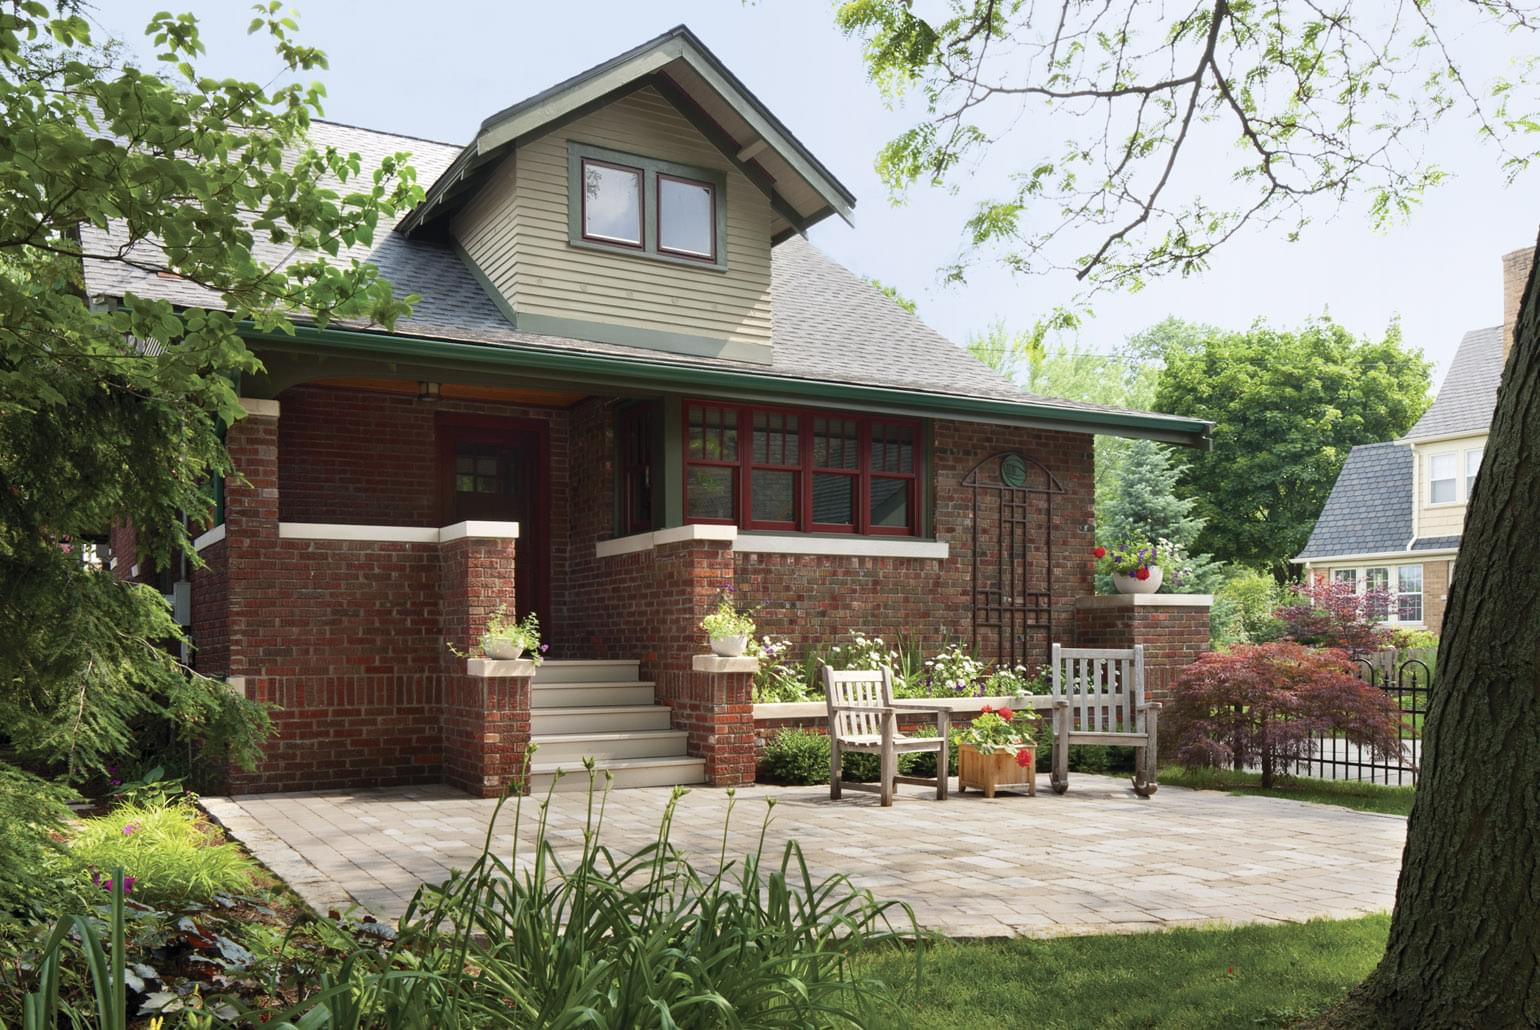 Best traditional style home fine homebuilding s 2014 for Fine homebuilding houses